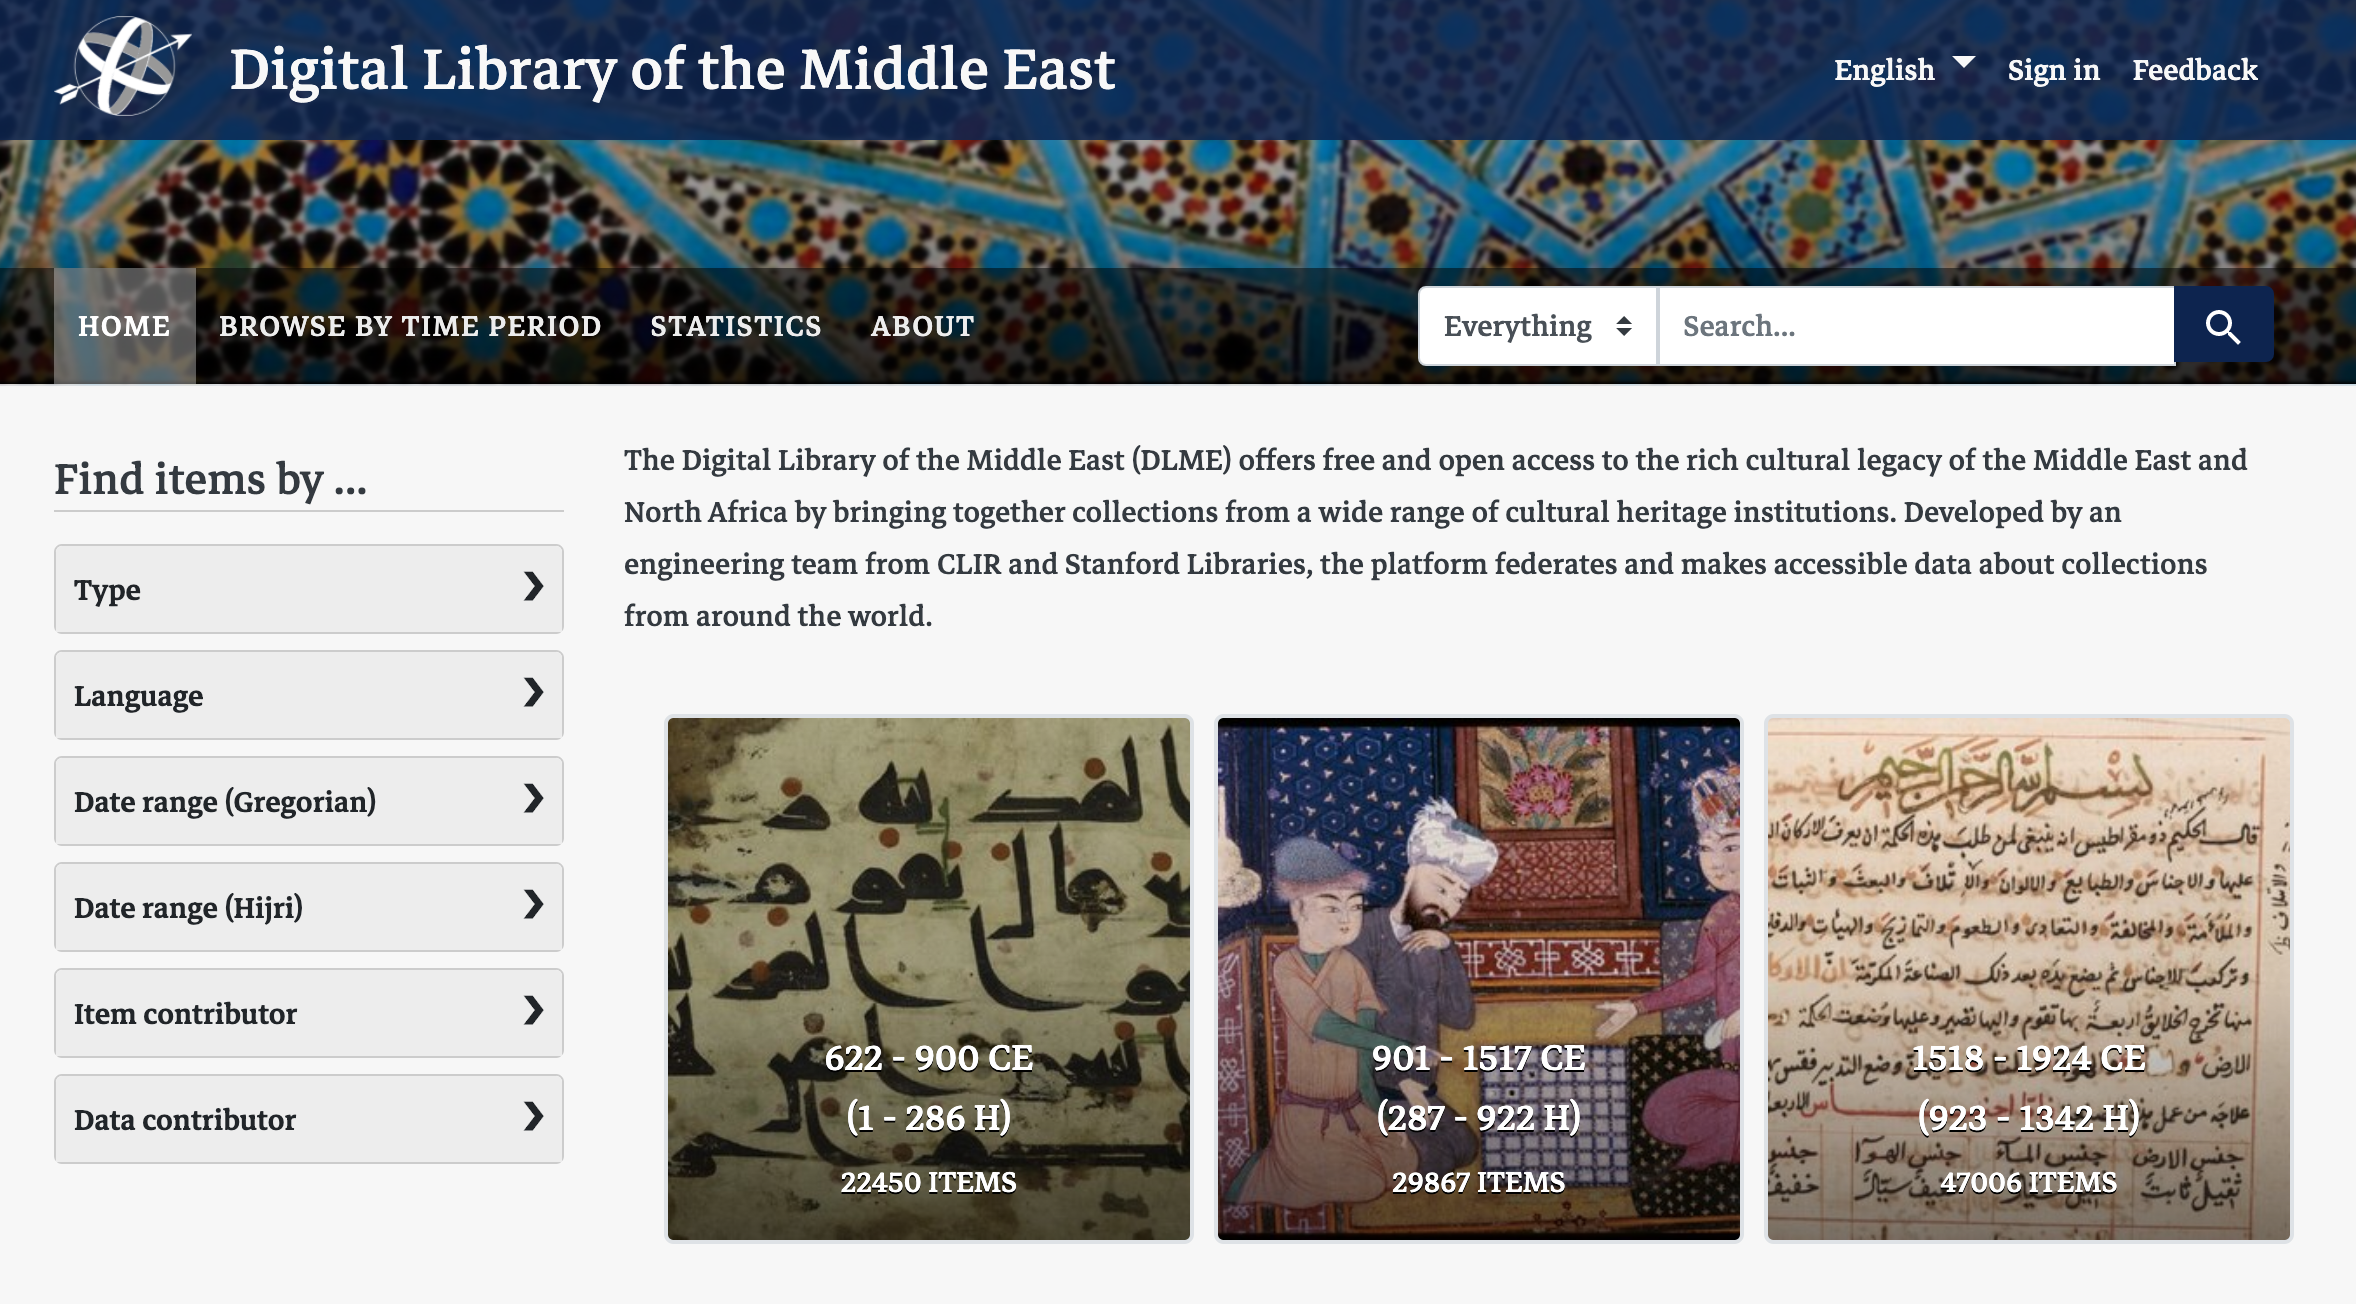 homepage screen shot of Digital Library of the Middle East